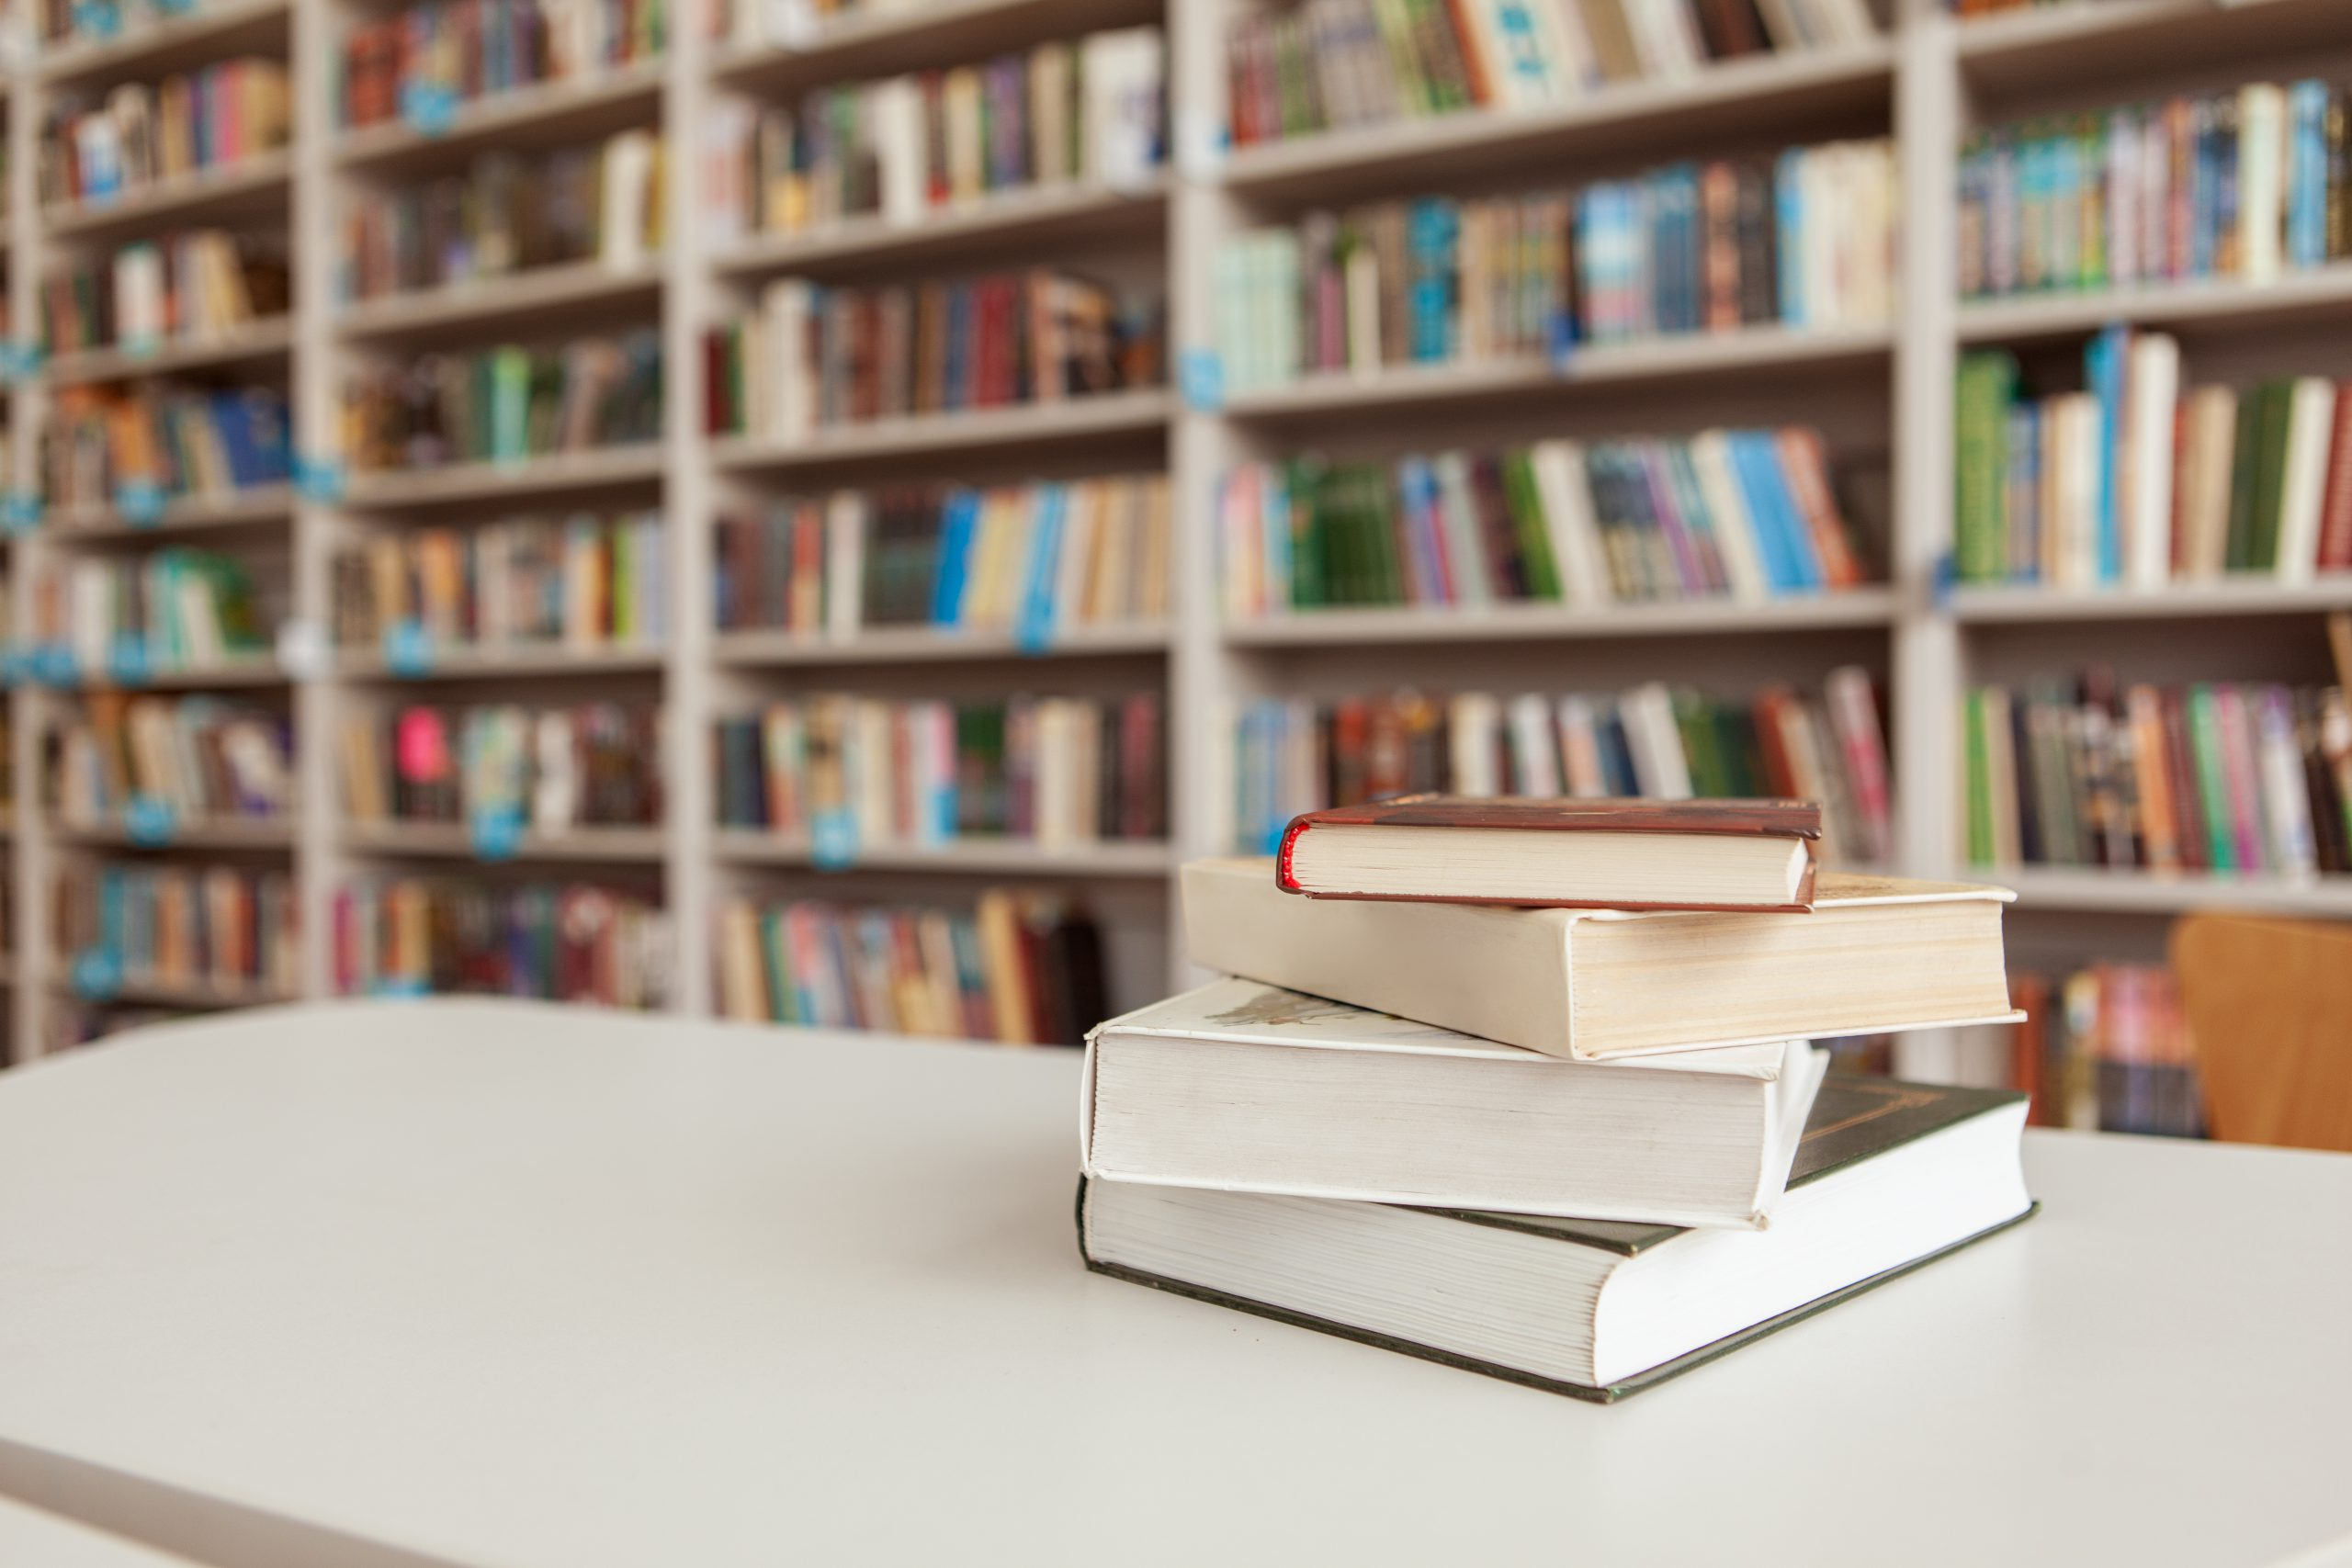 Counterfeit Textbooks: Why and How to Avoid Buying Them?